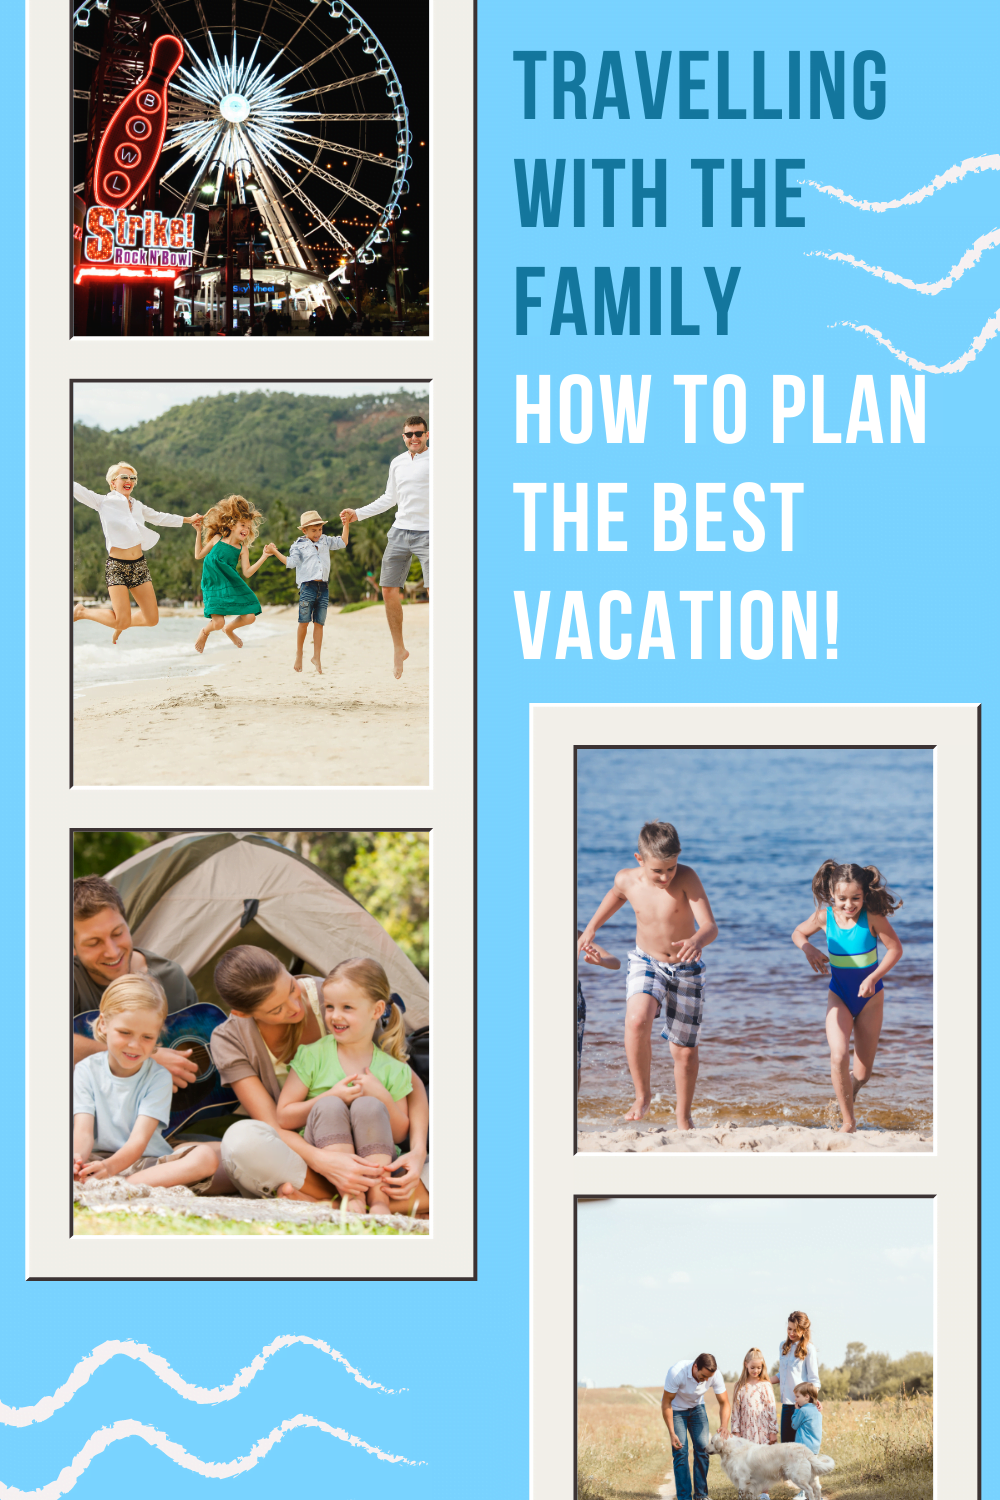 Travelling With the Family - How to Plan the Best Vacation